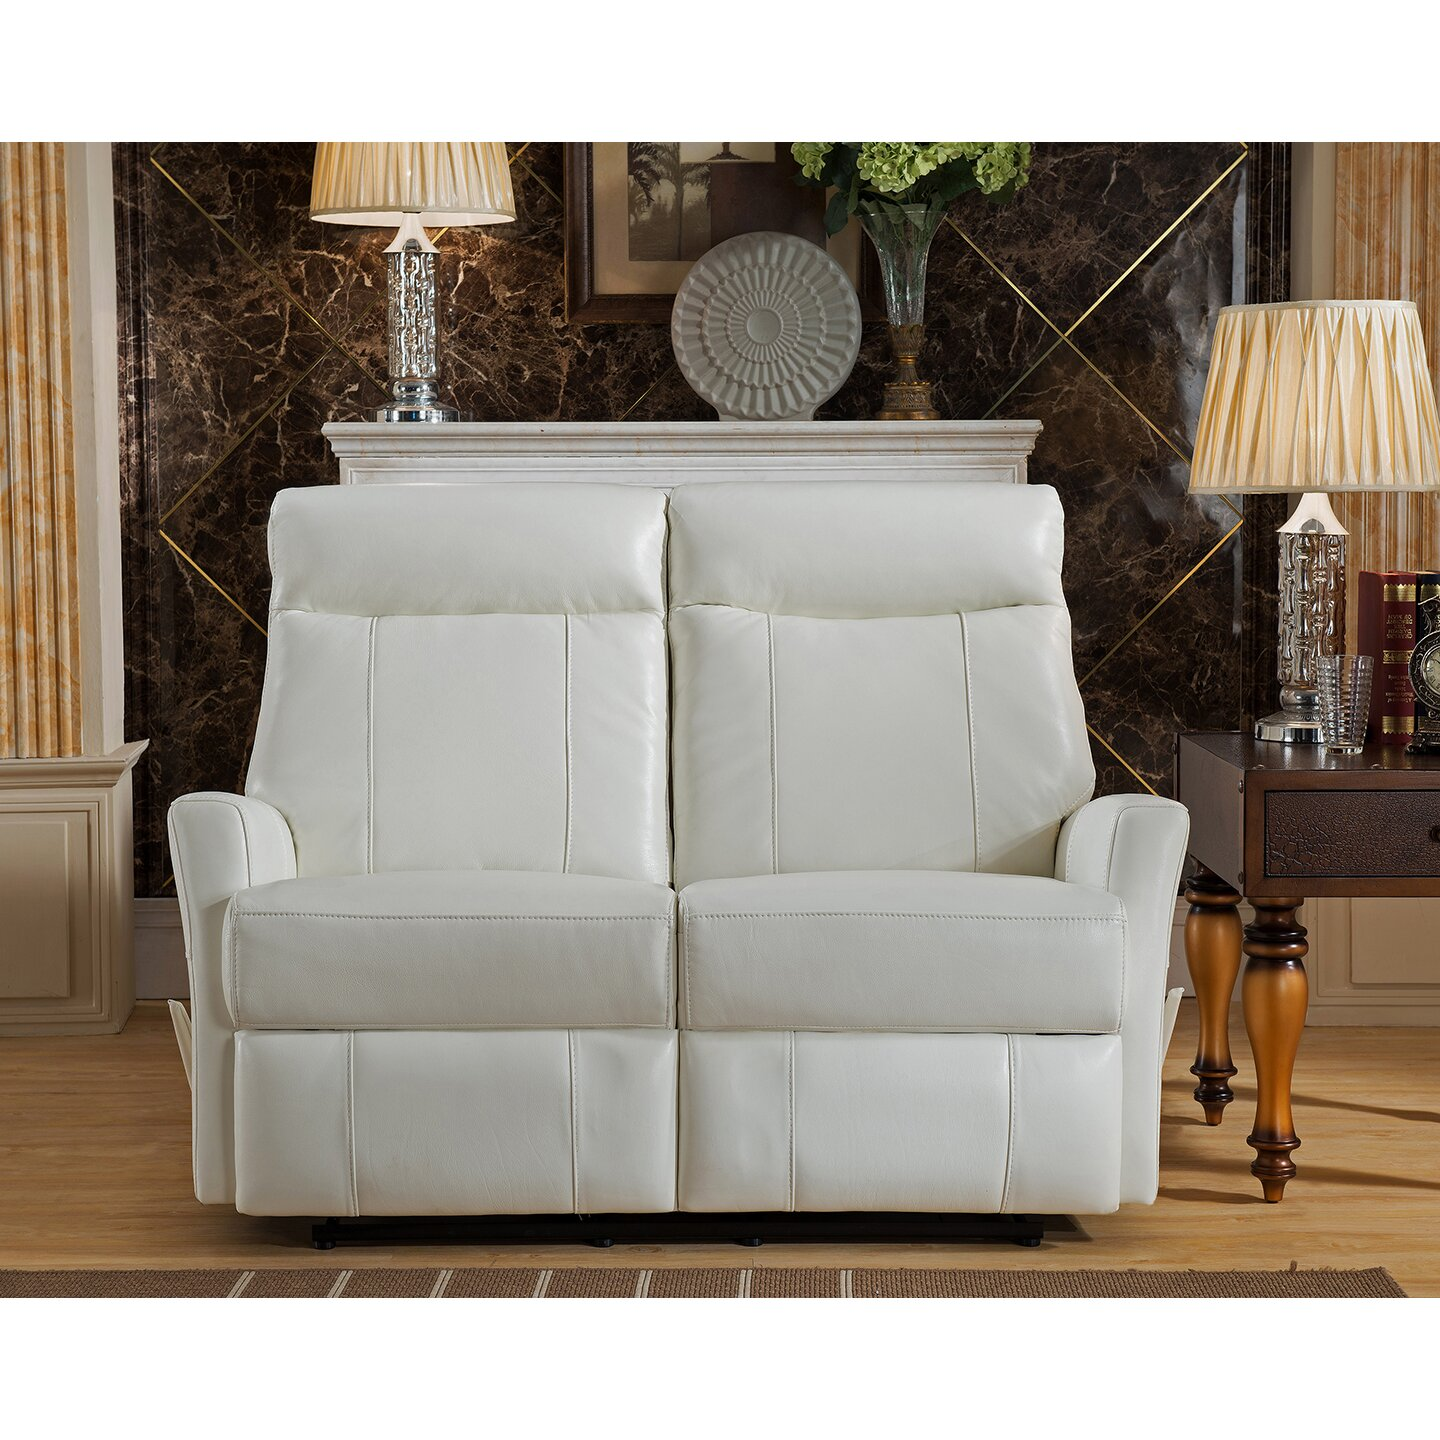 Amax toledo leather sofa and loveseat set wayfair Living room furniture toledo ohio